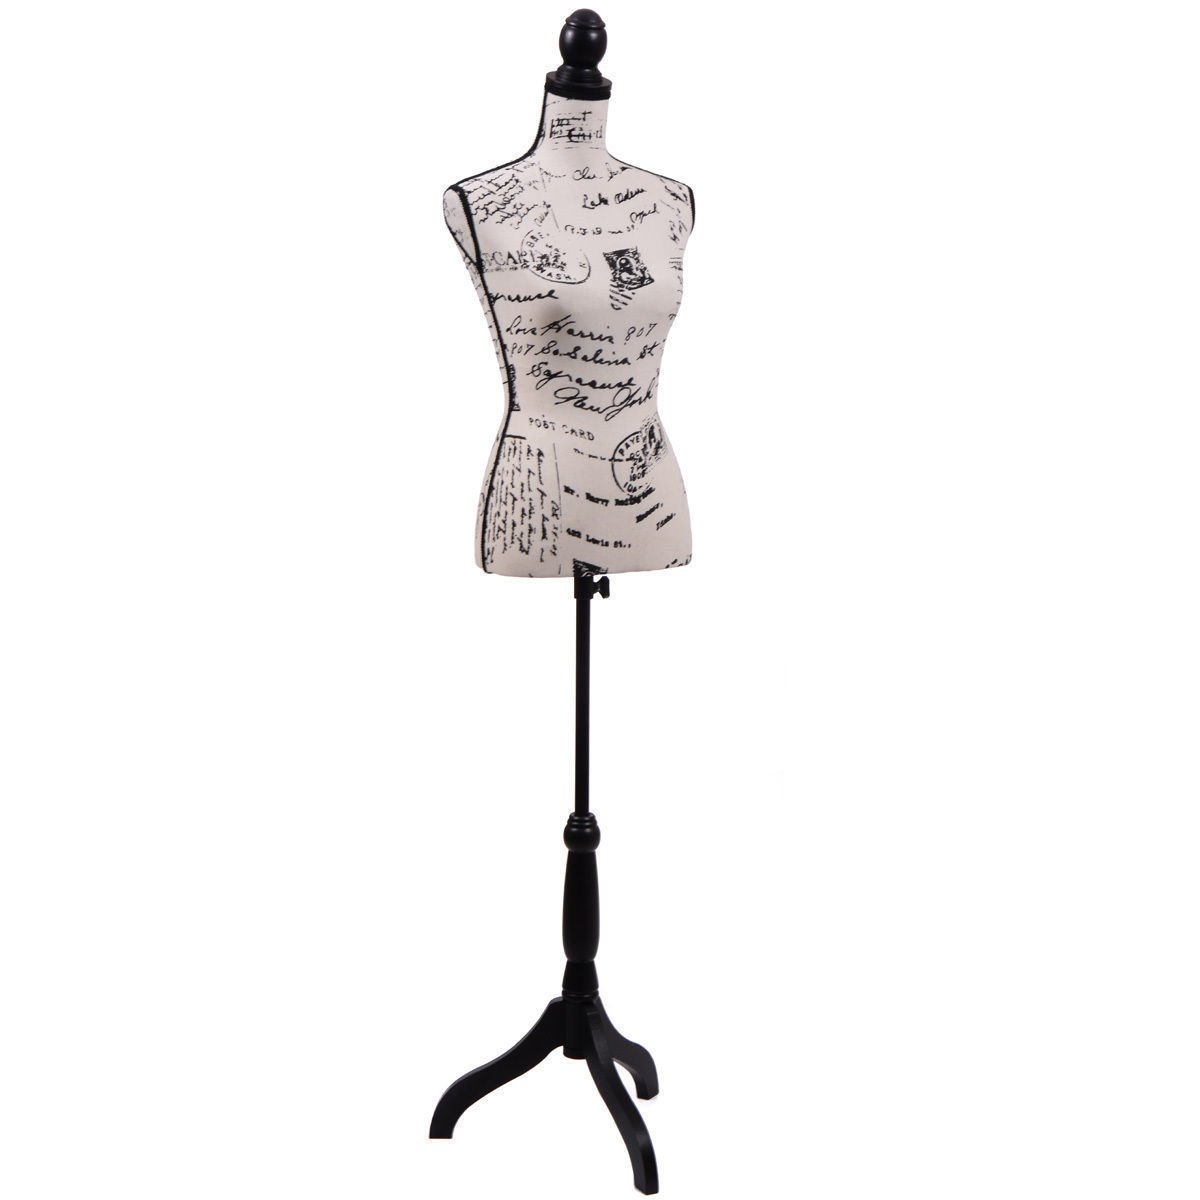 JAXPETY Female Mannequin Torso Clothing Display W/Black Tripod Stand New (White)